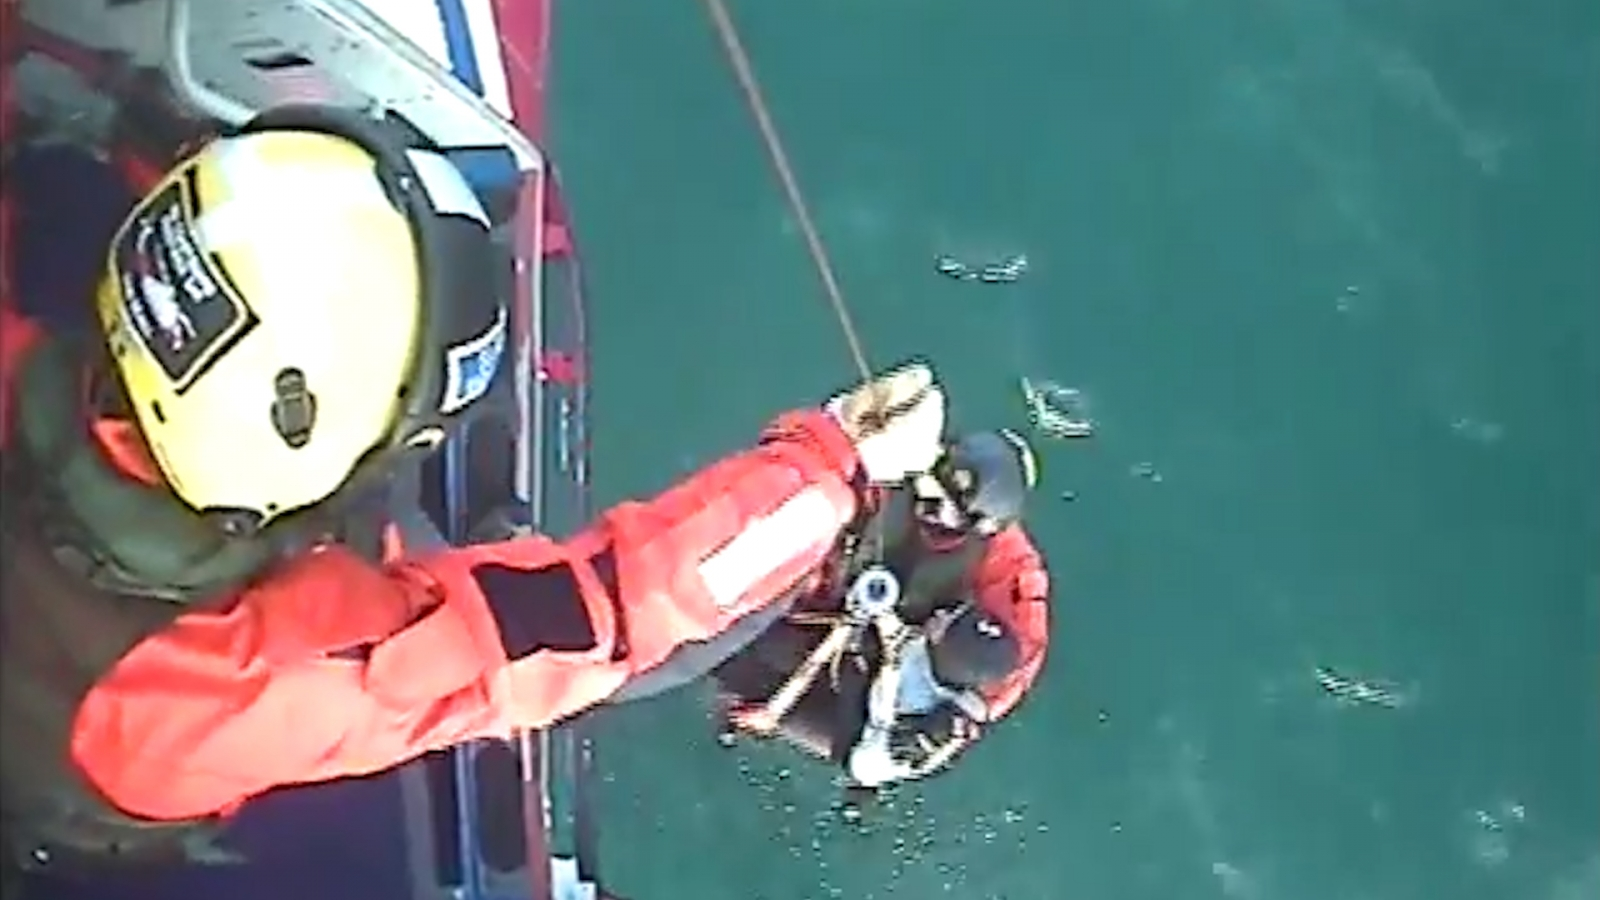 rescue of surfer after 30 hours at sea